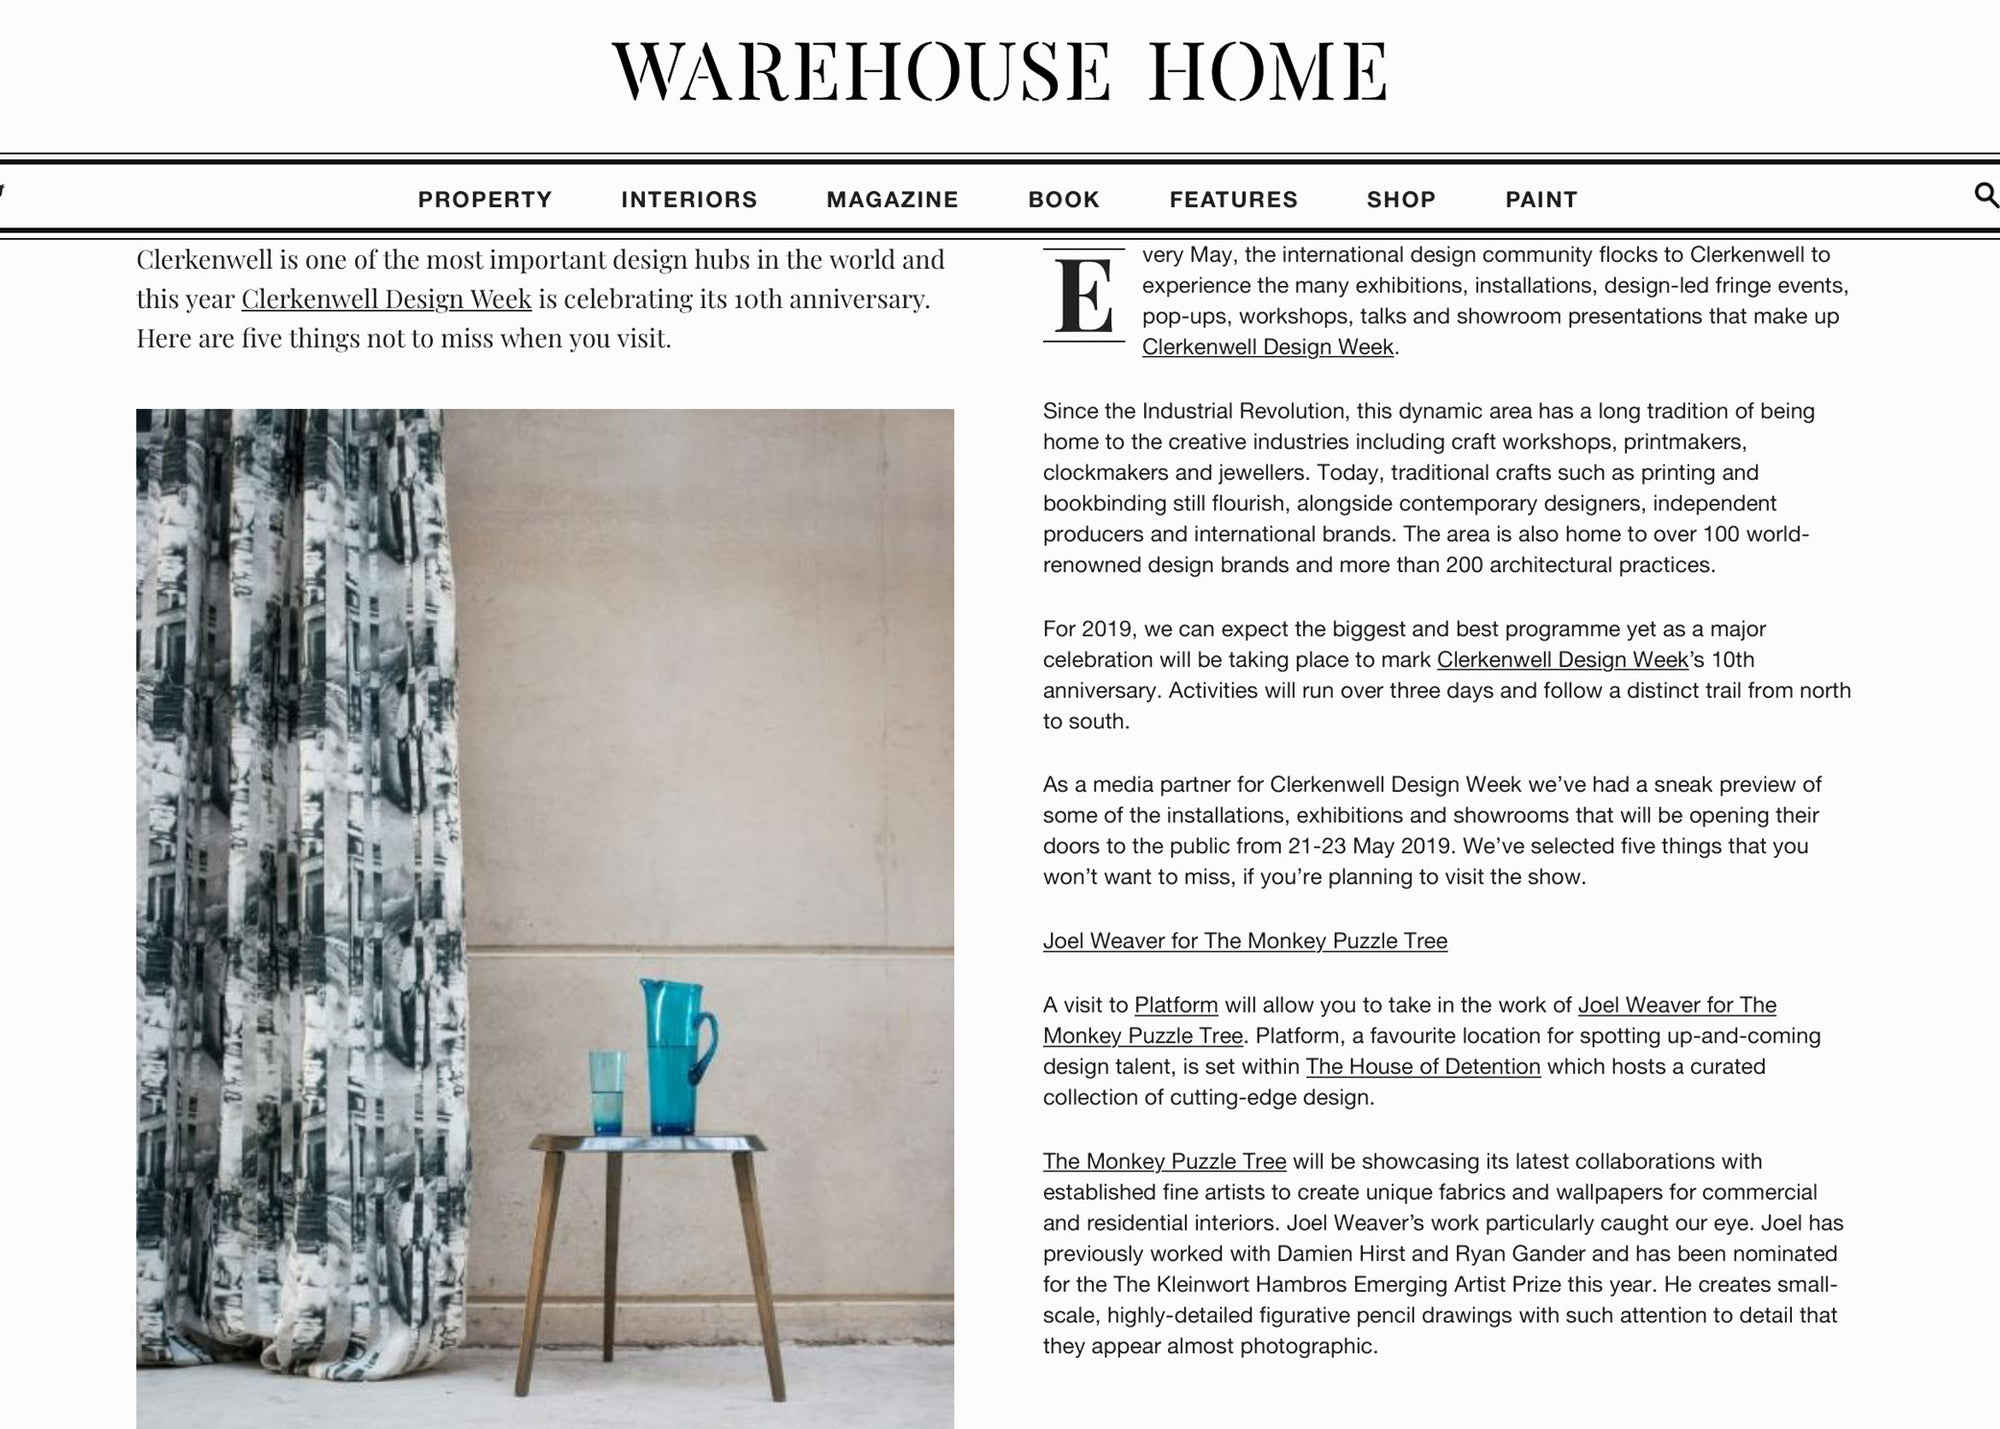 Warehouse Home Clerkenwell 2019 Featuring The Monkey Puzzle Tree